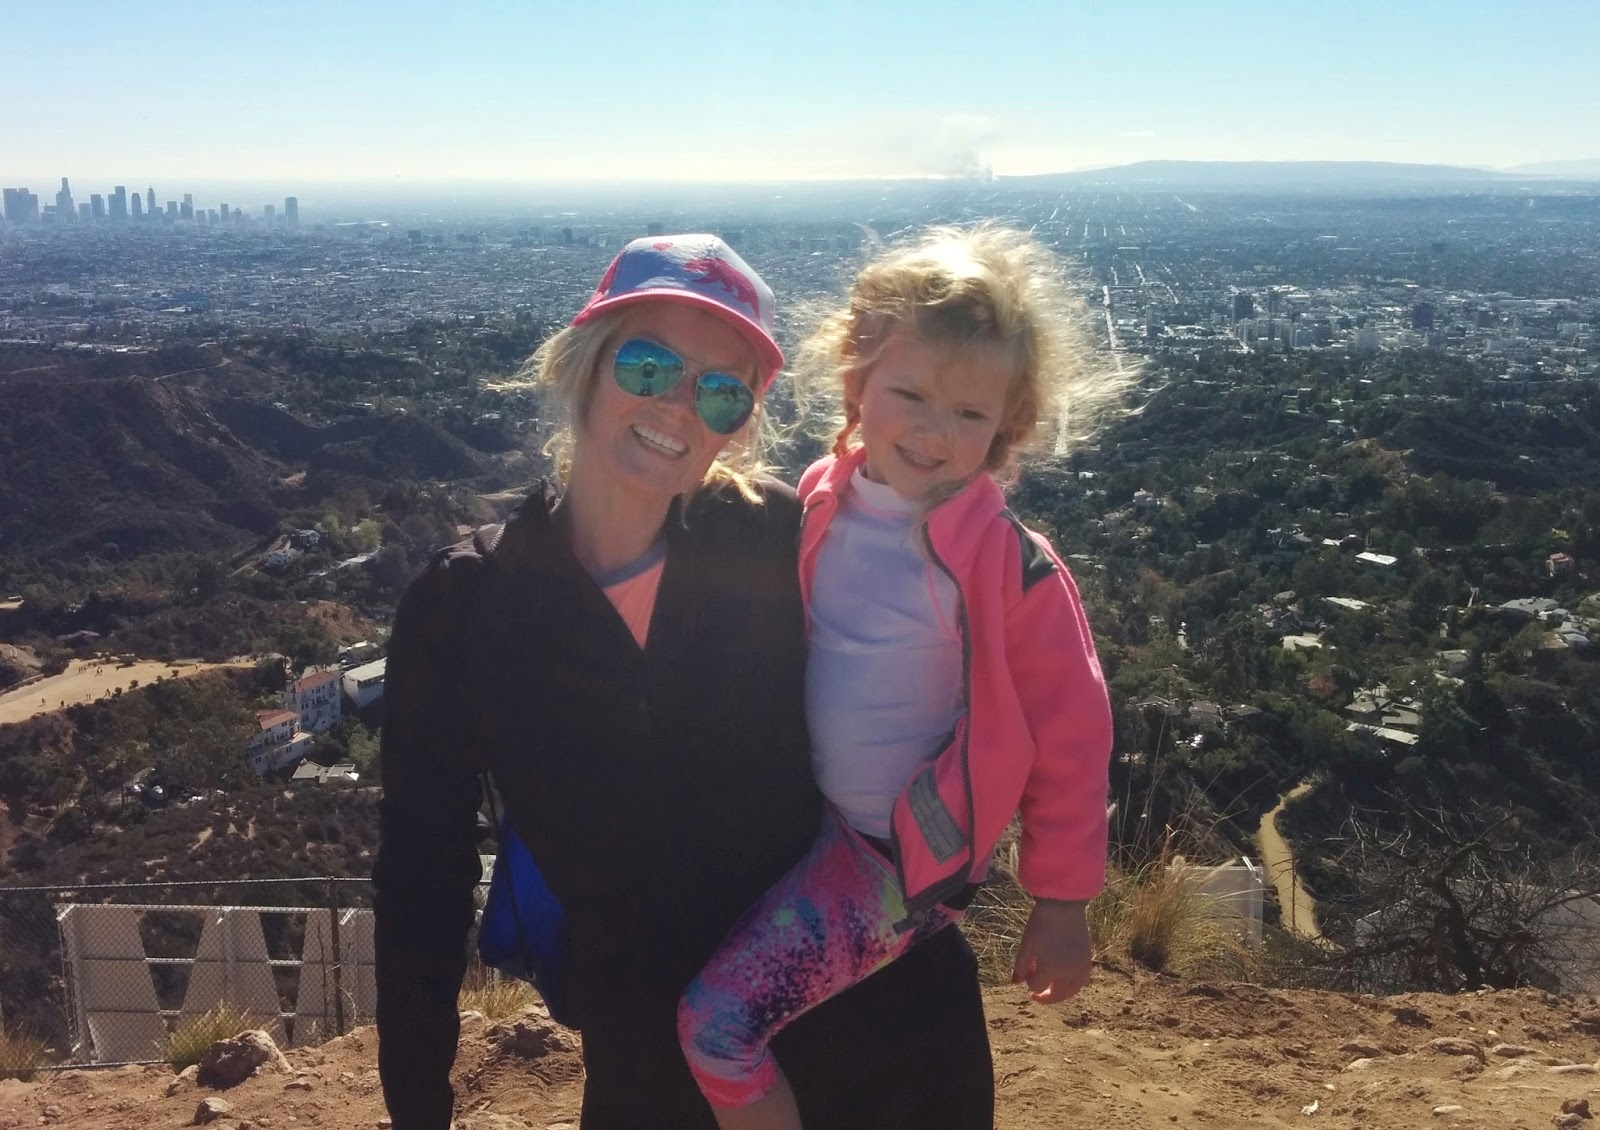 Mom and Daughter Hollywood Sign Hike Los Angeles California fit mom momswhohike fitfam hiking